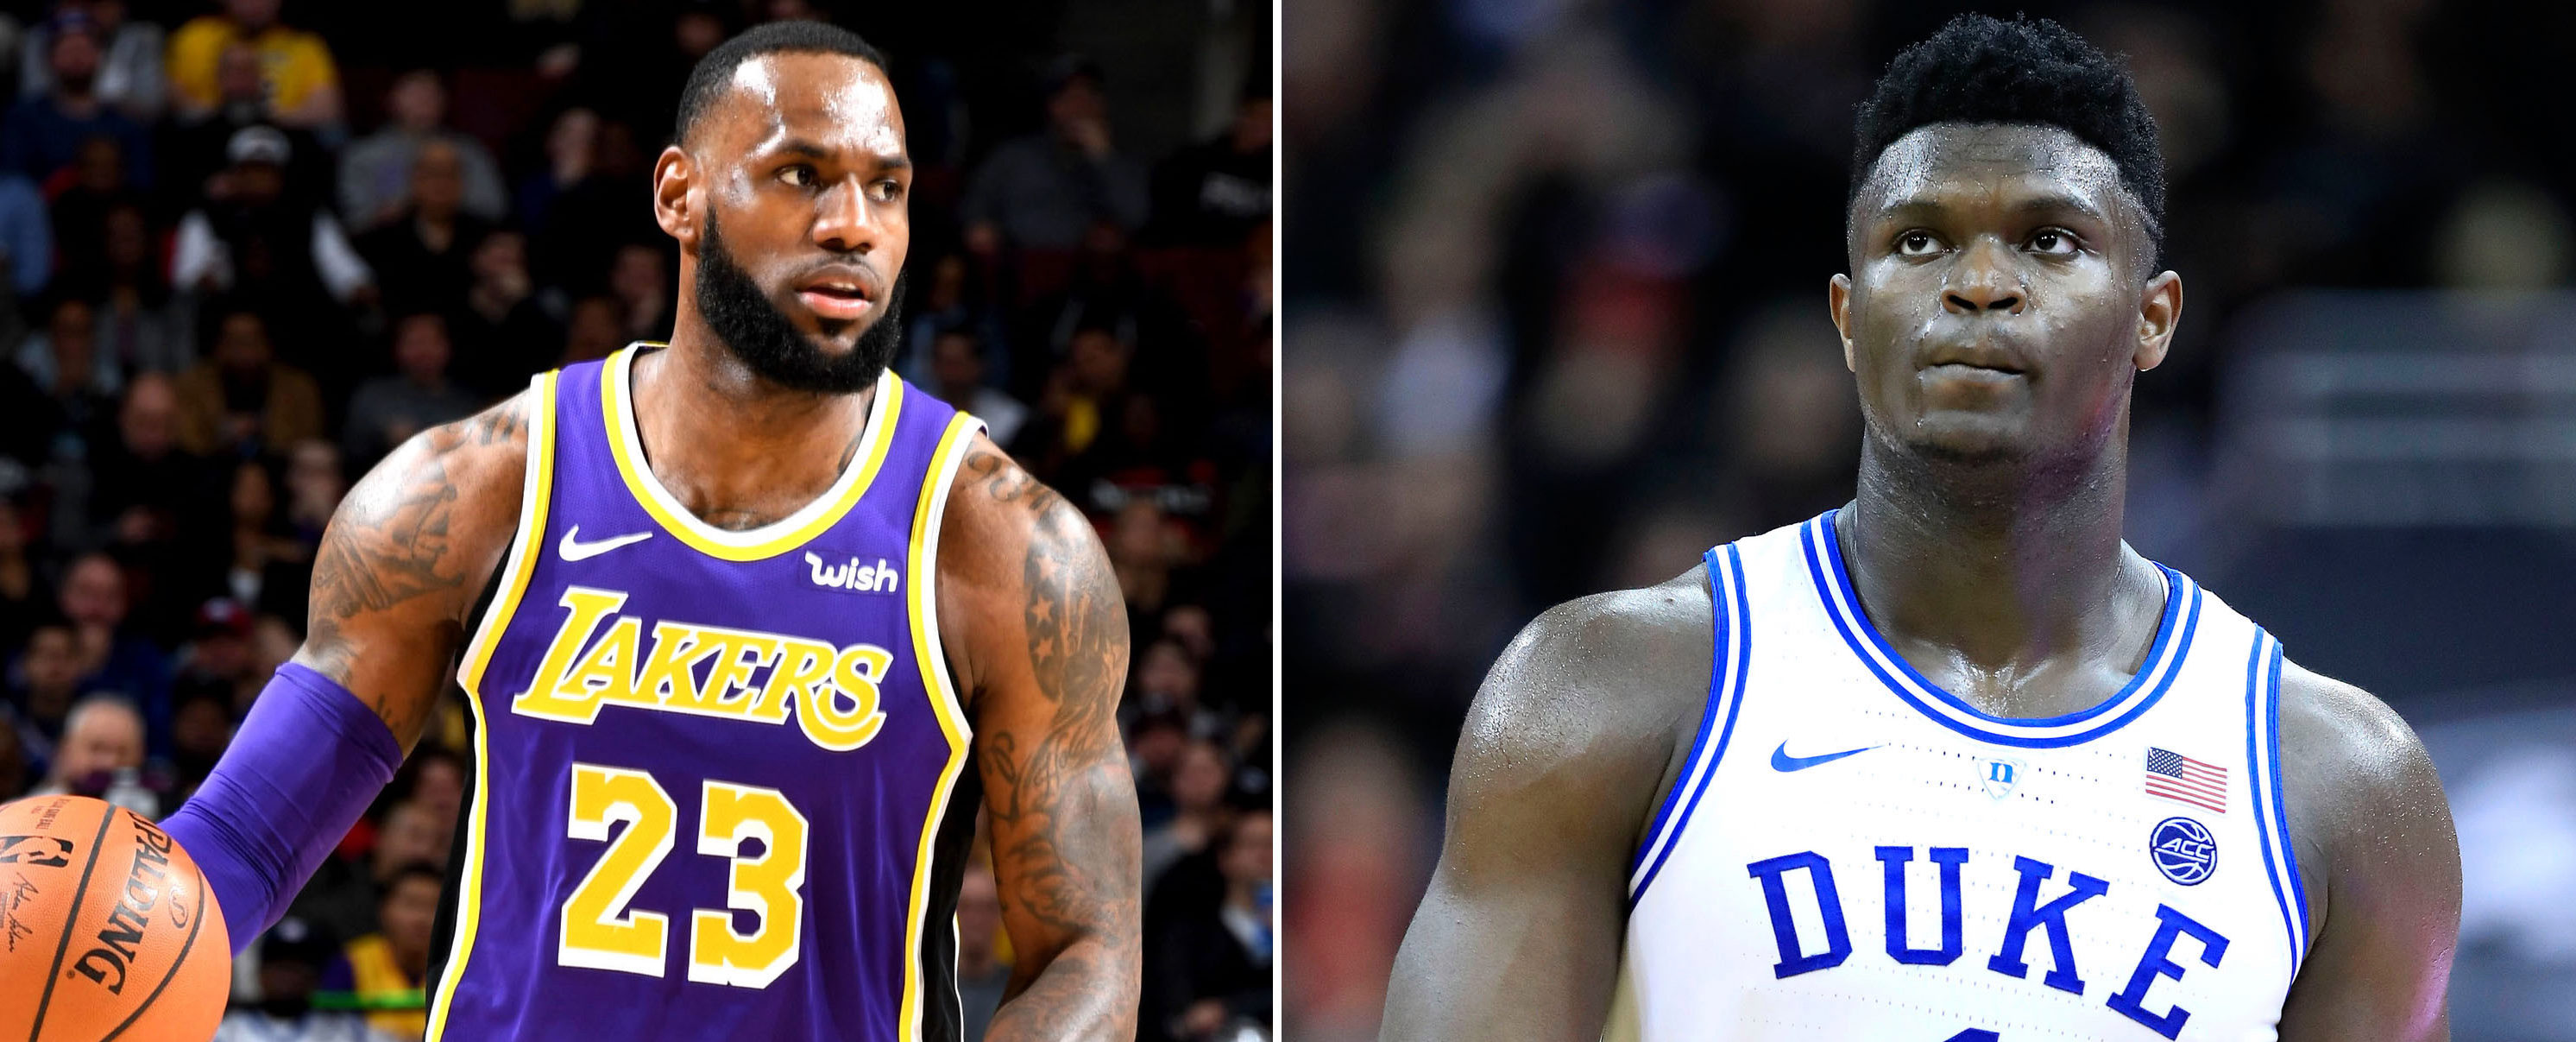 LeBron James des Lakers et son héritier Zion Williamson ?